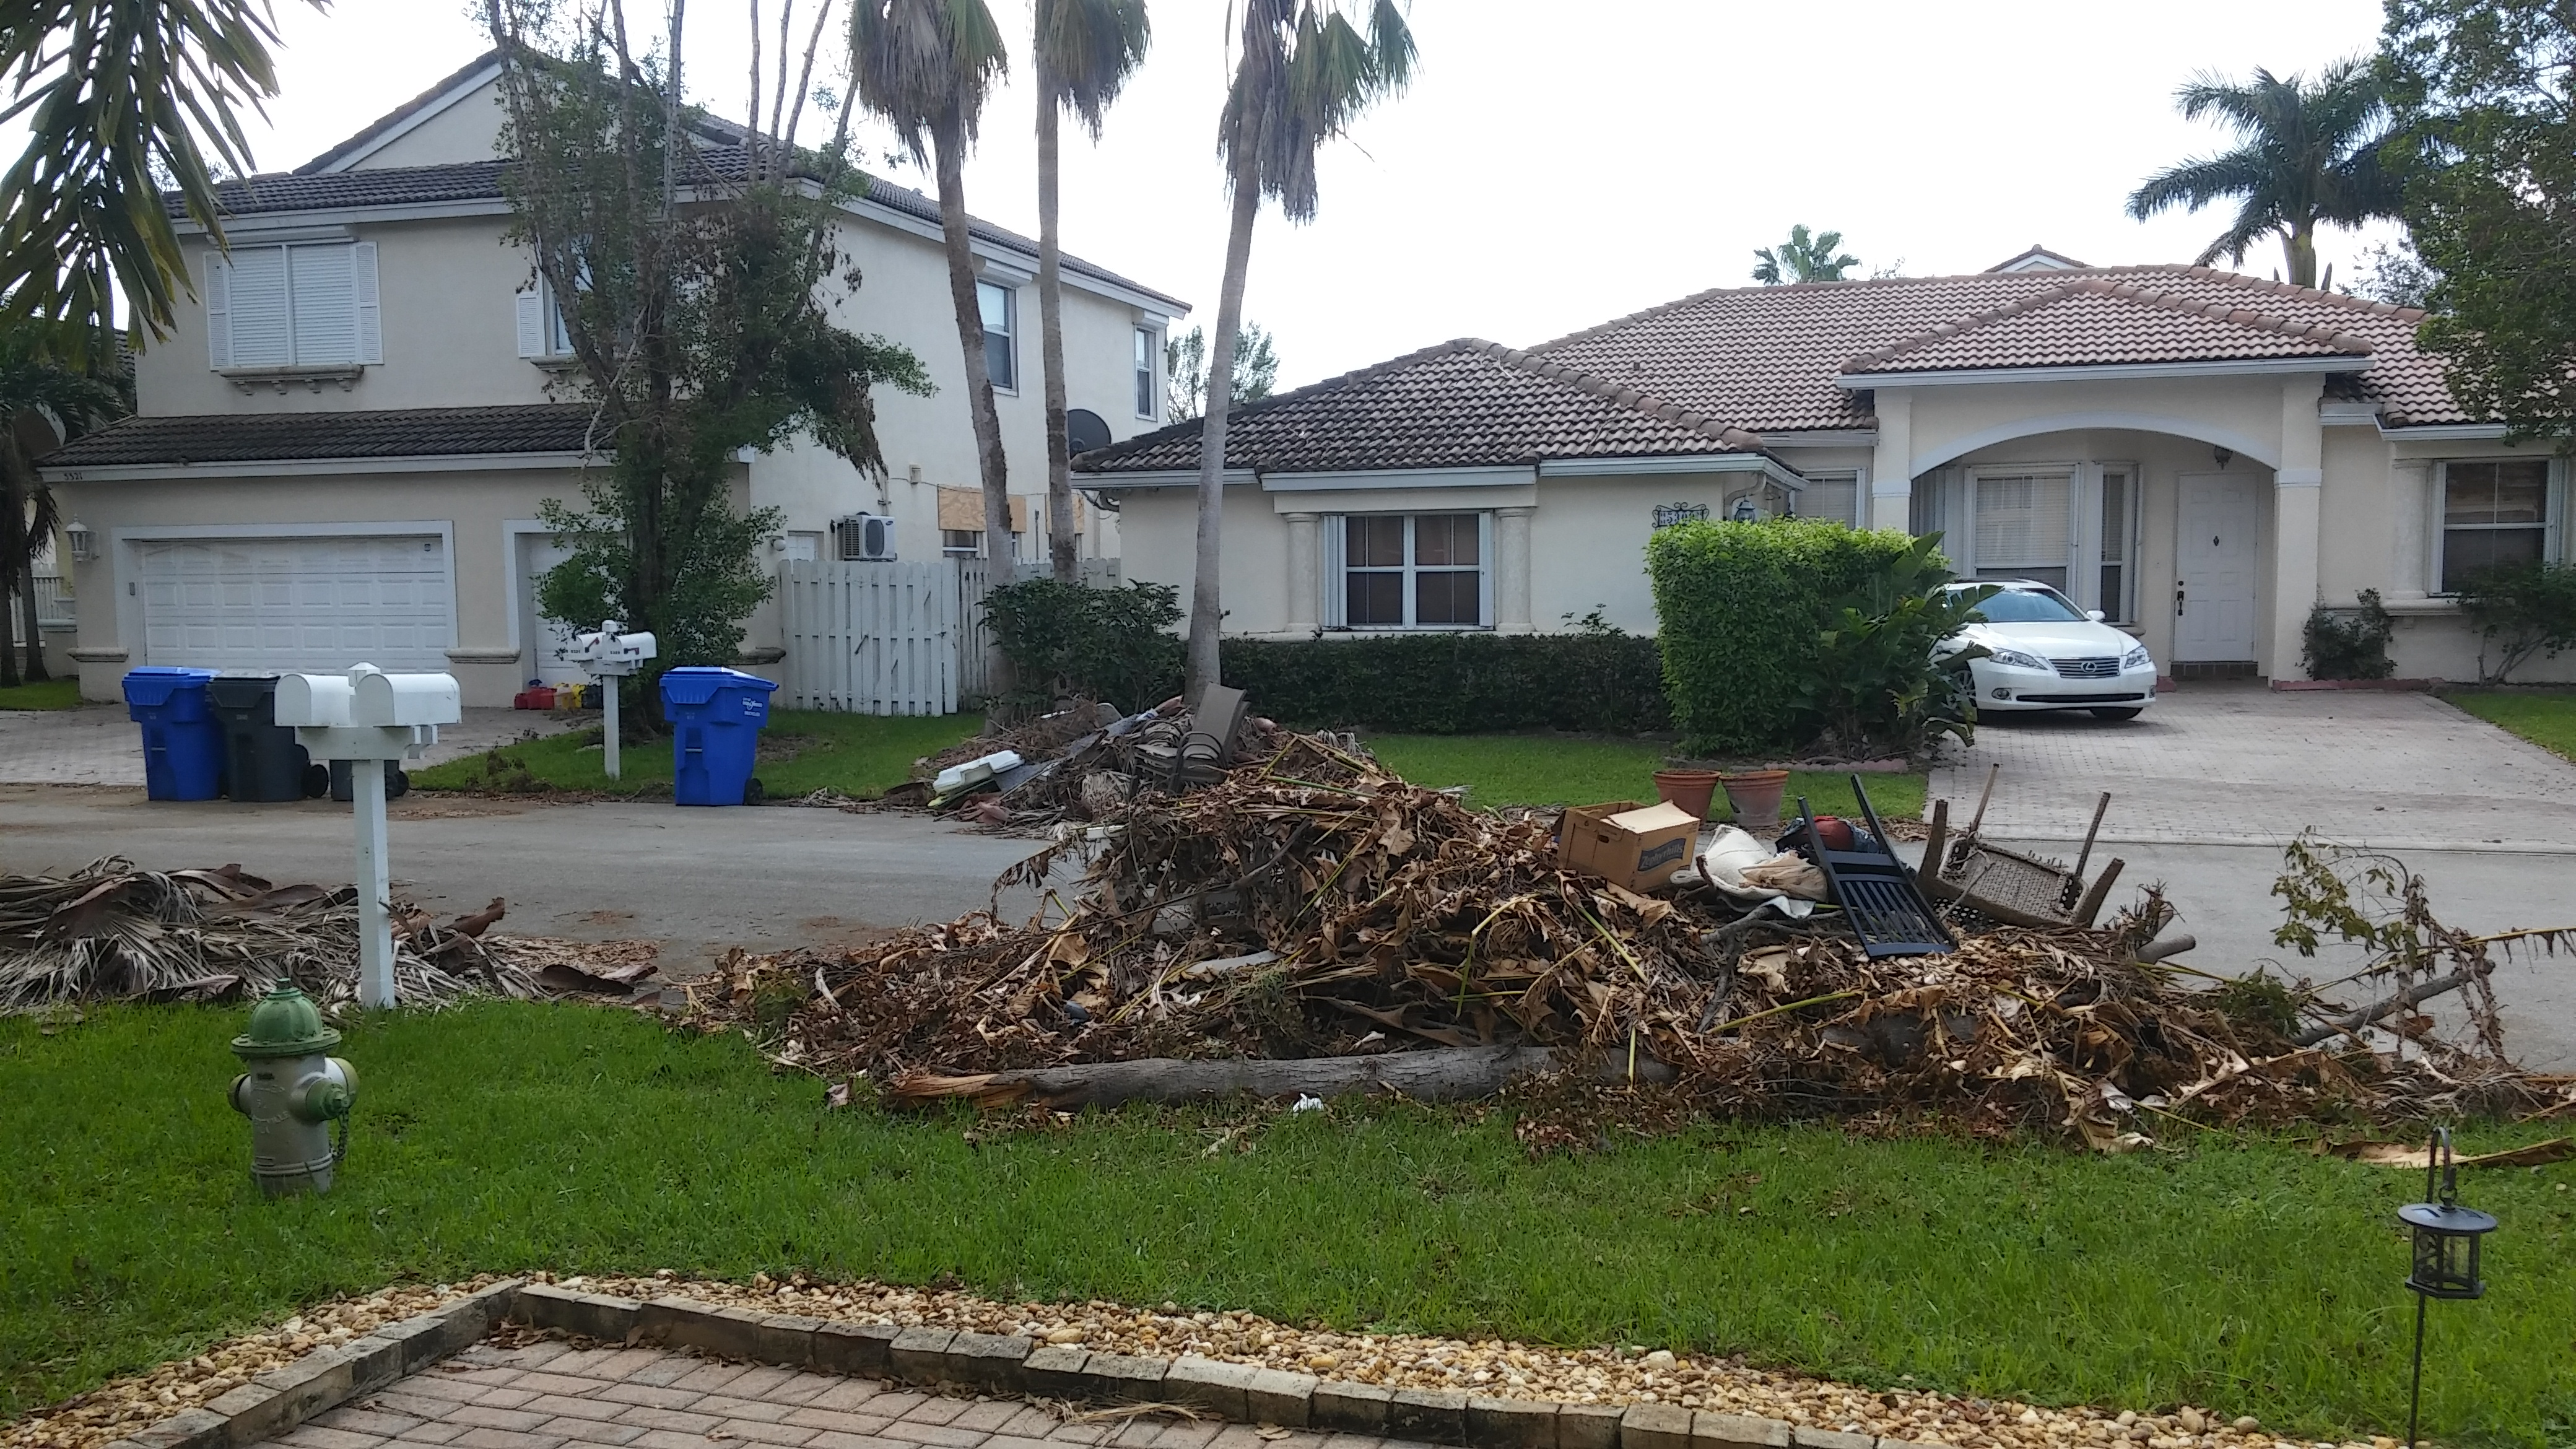 Pile of debris in front of home